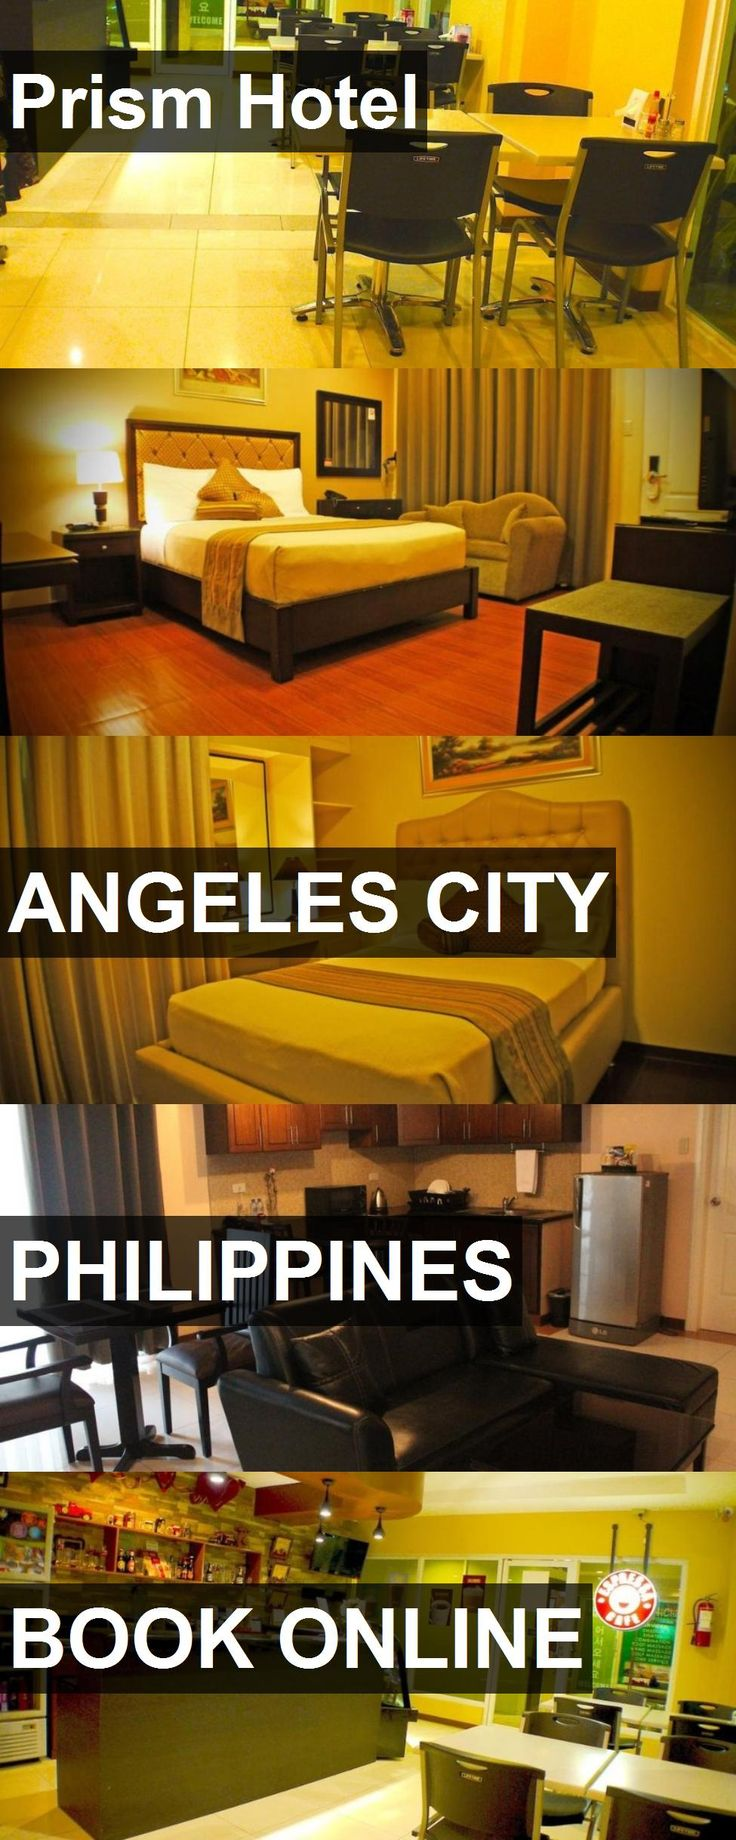 Prism Hotel in Angeles City, Philippines. For more information, photos, reviews and best prices please follow the link. #Philippines #AngelesCity #travel #vacation #hotel